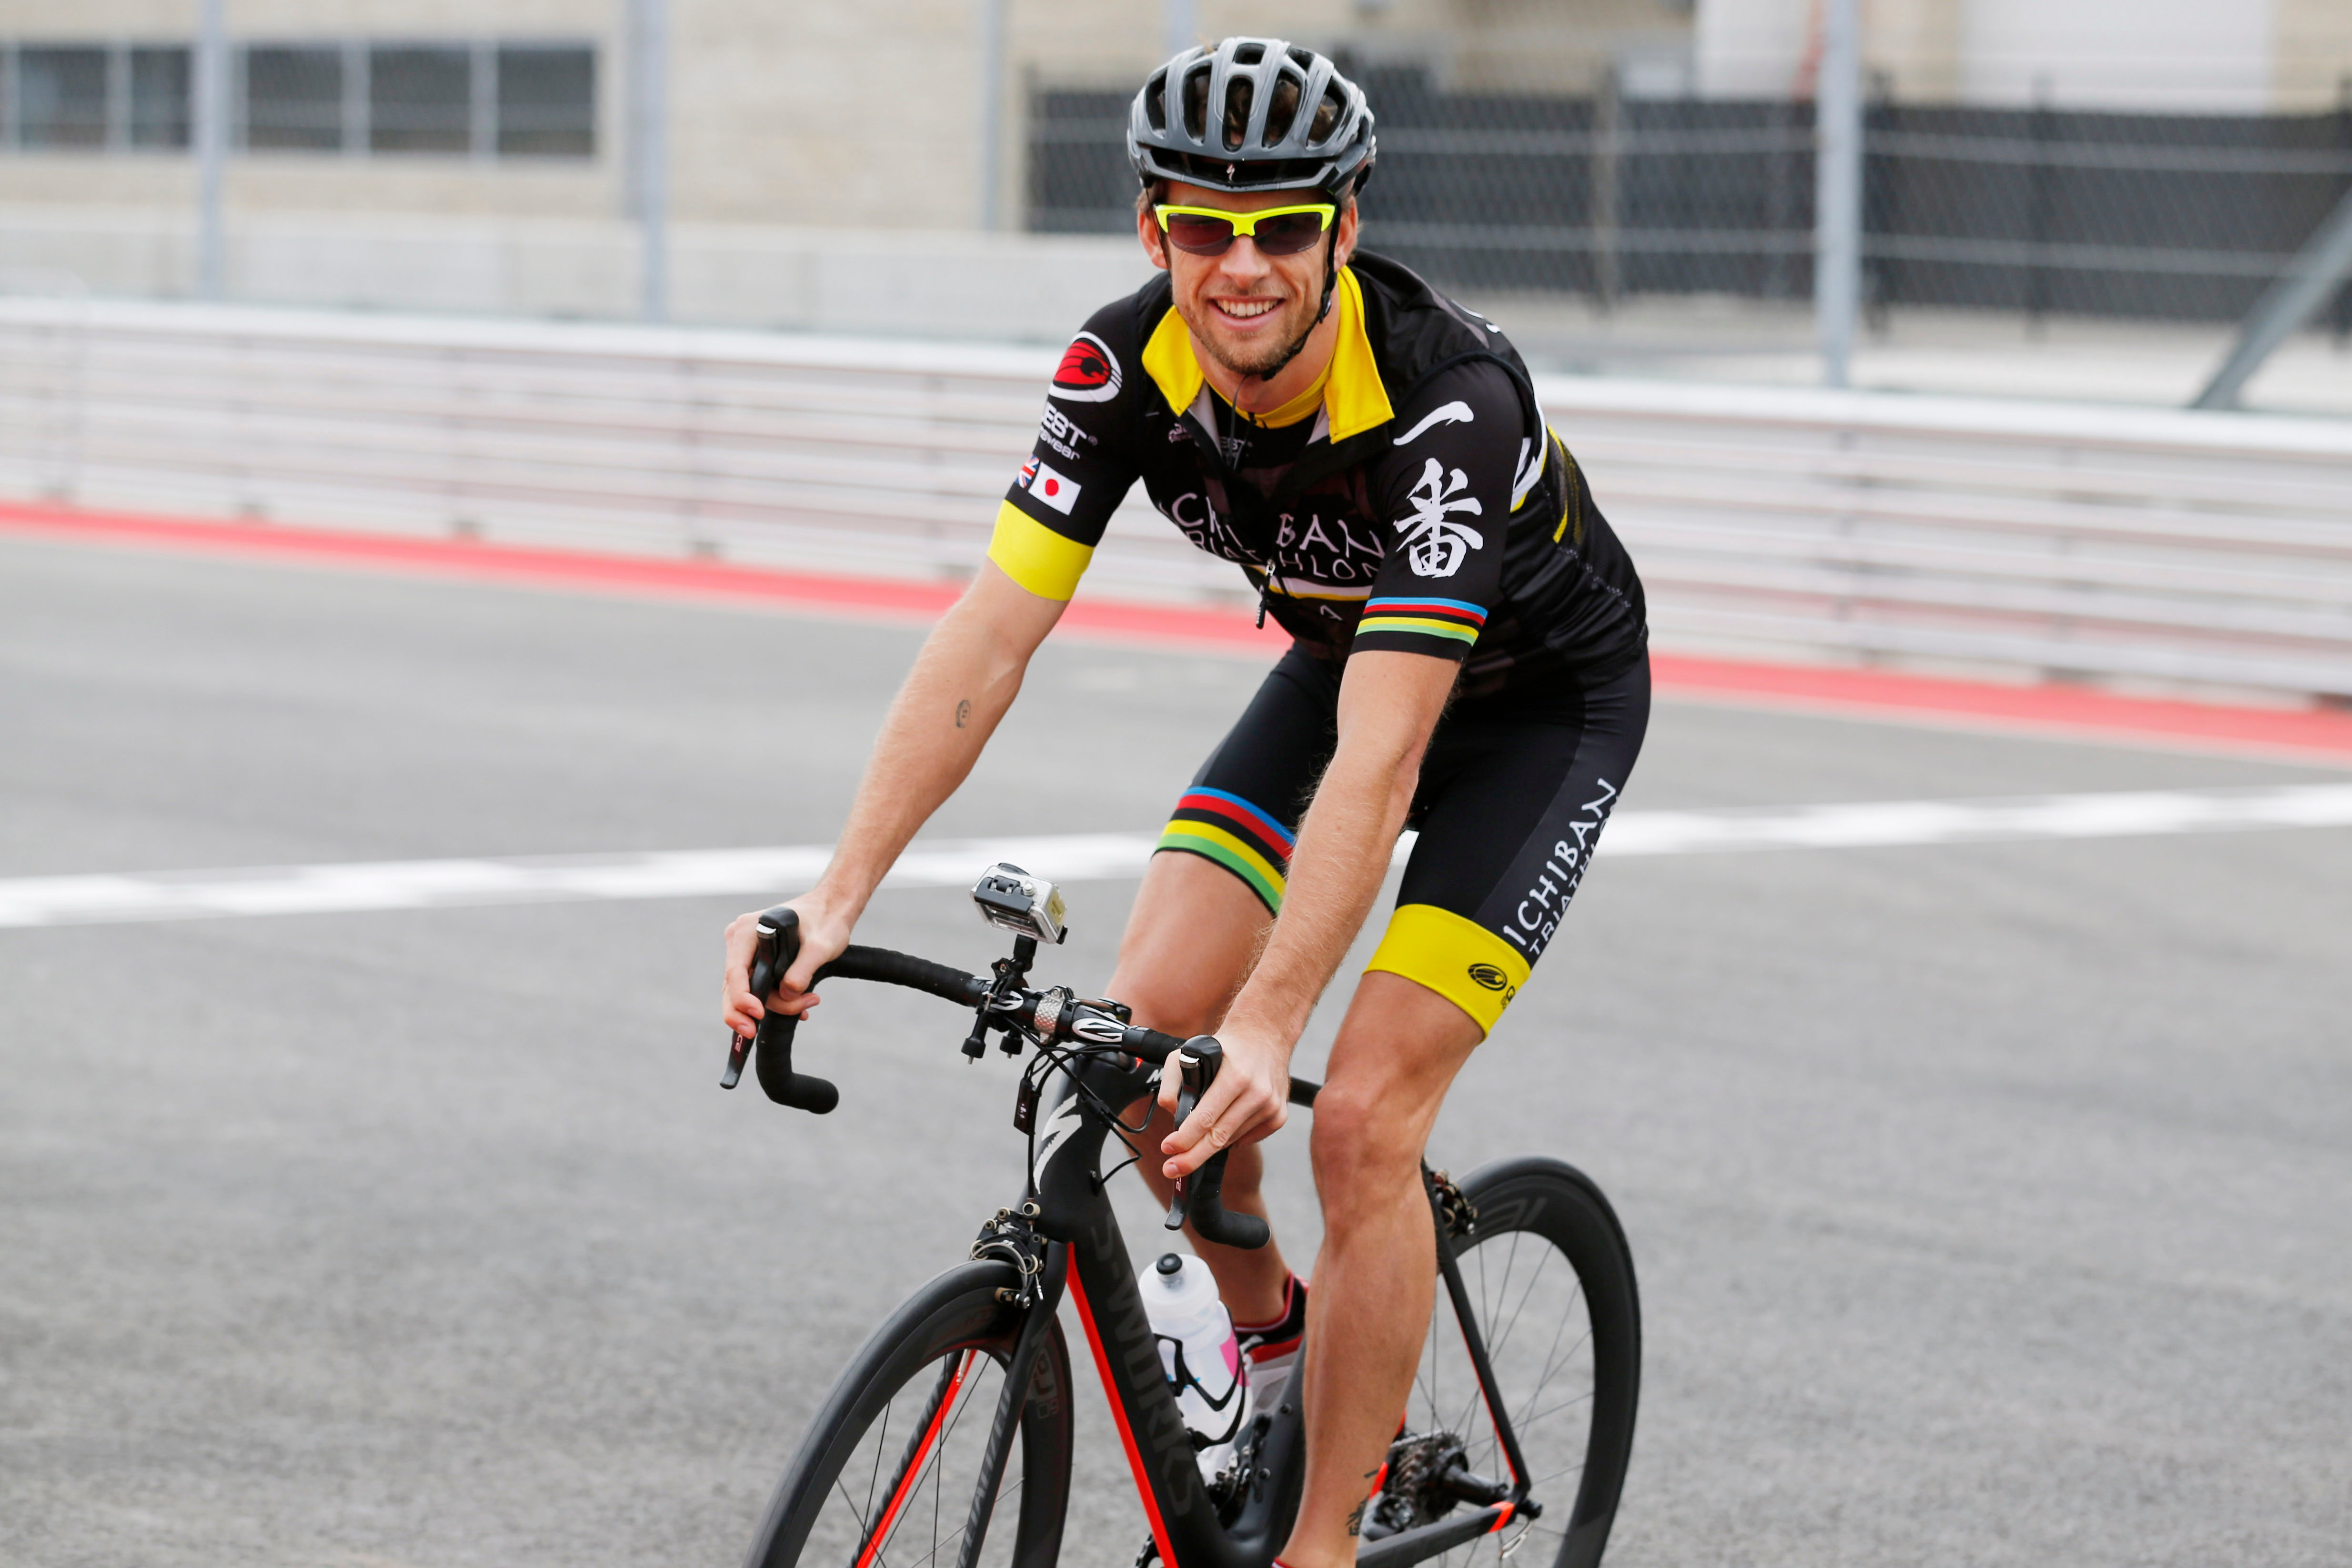 Jenson Button used triathlons to train